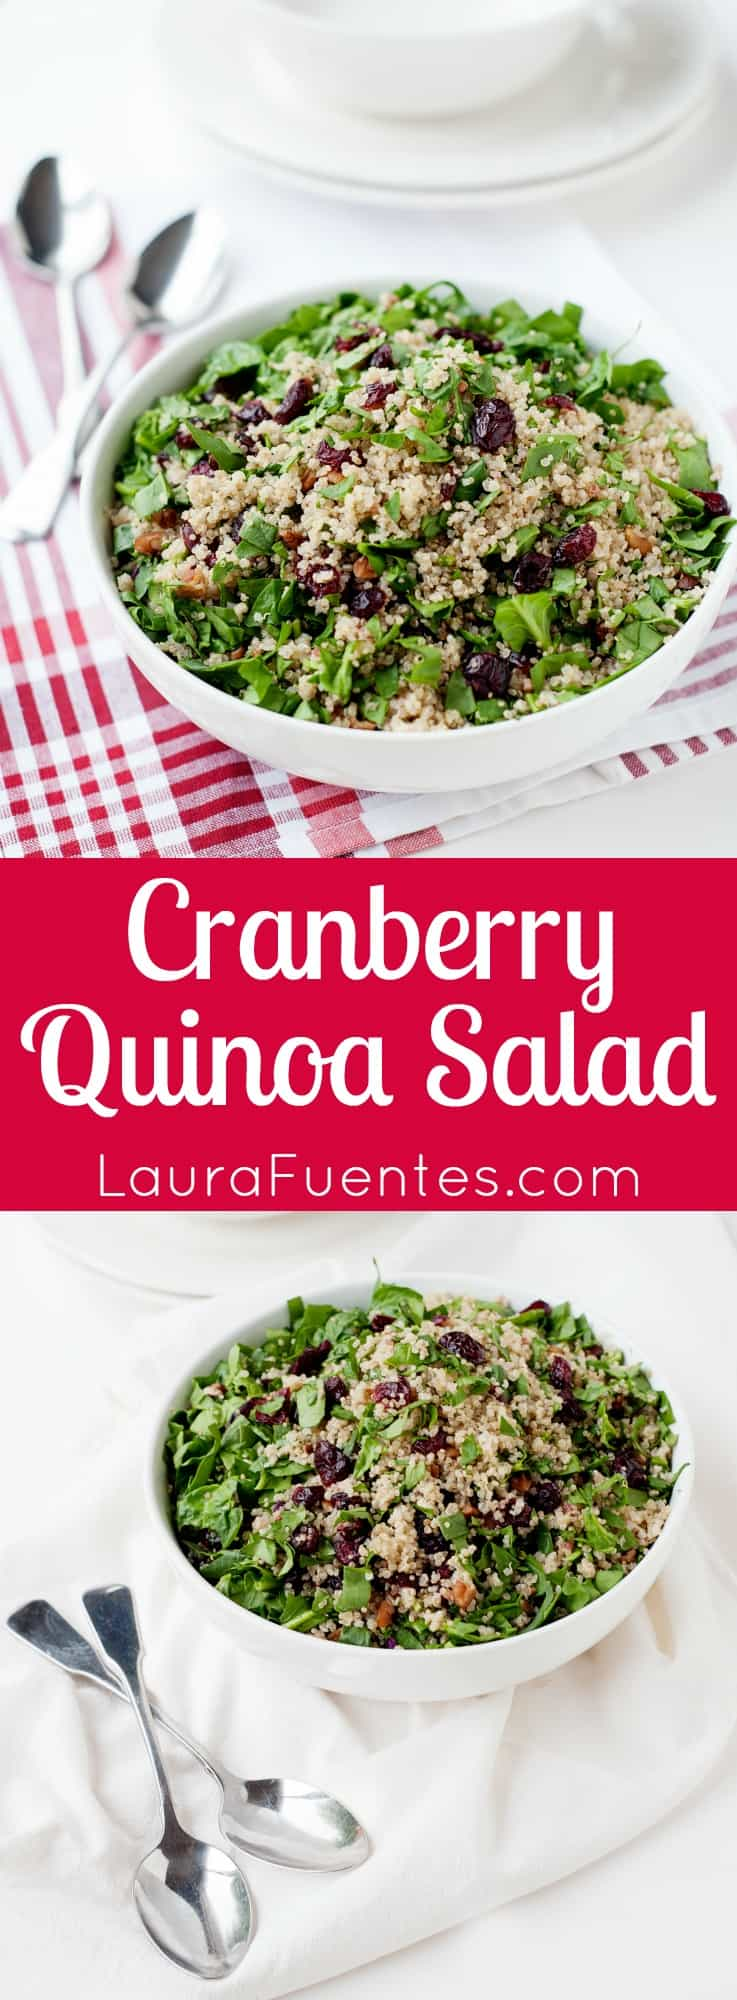 Cranberry Quinoa Salad - Naturally gluten free, this makes the perfect side dish for any dinner or a great lunch at the office.